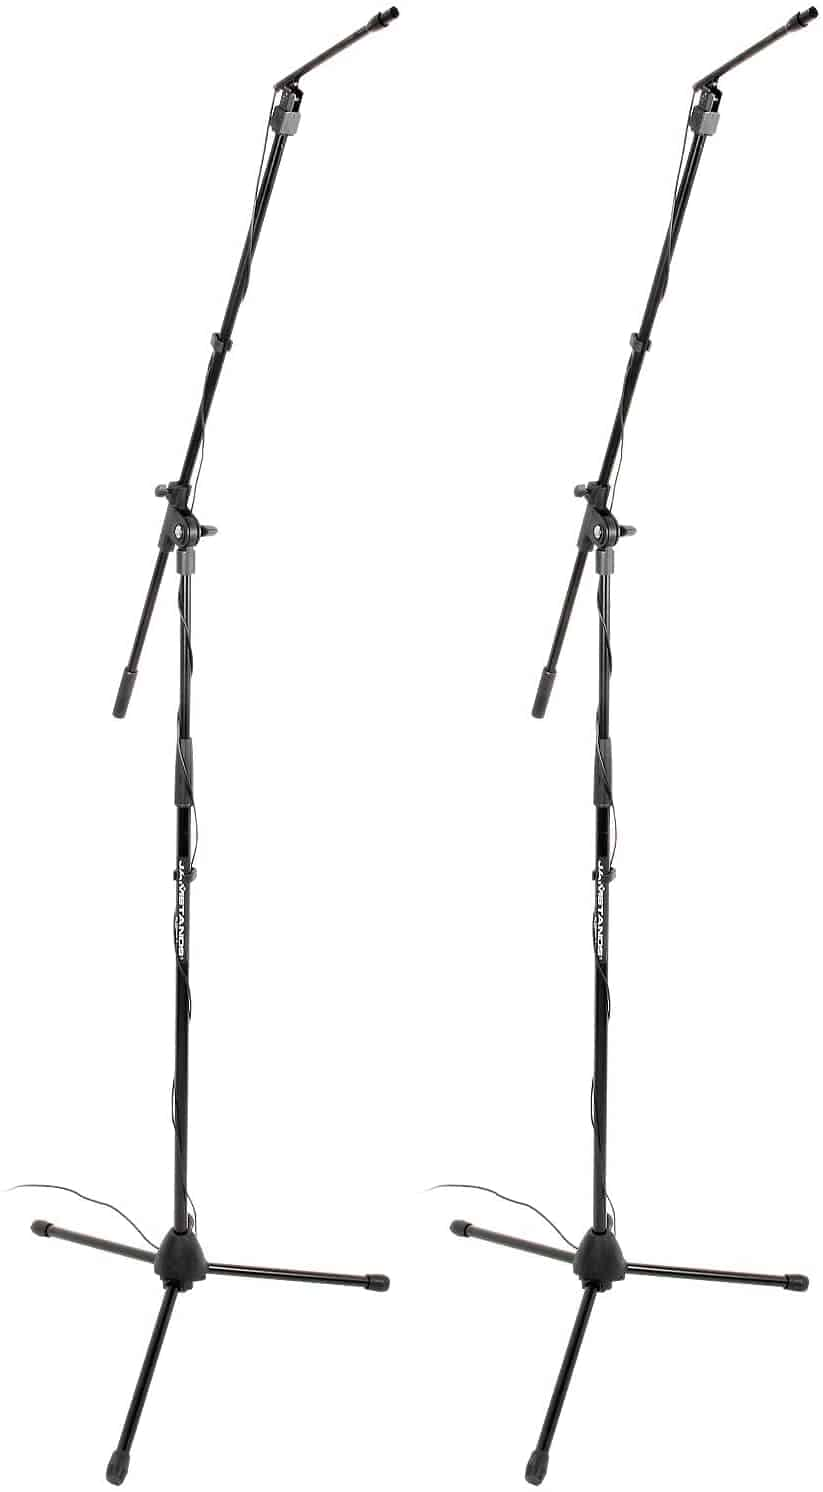 Best choir mics for outdoor use: Samson Choir Microphone with Stands